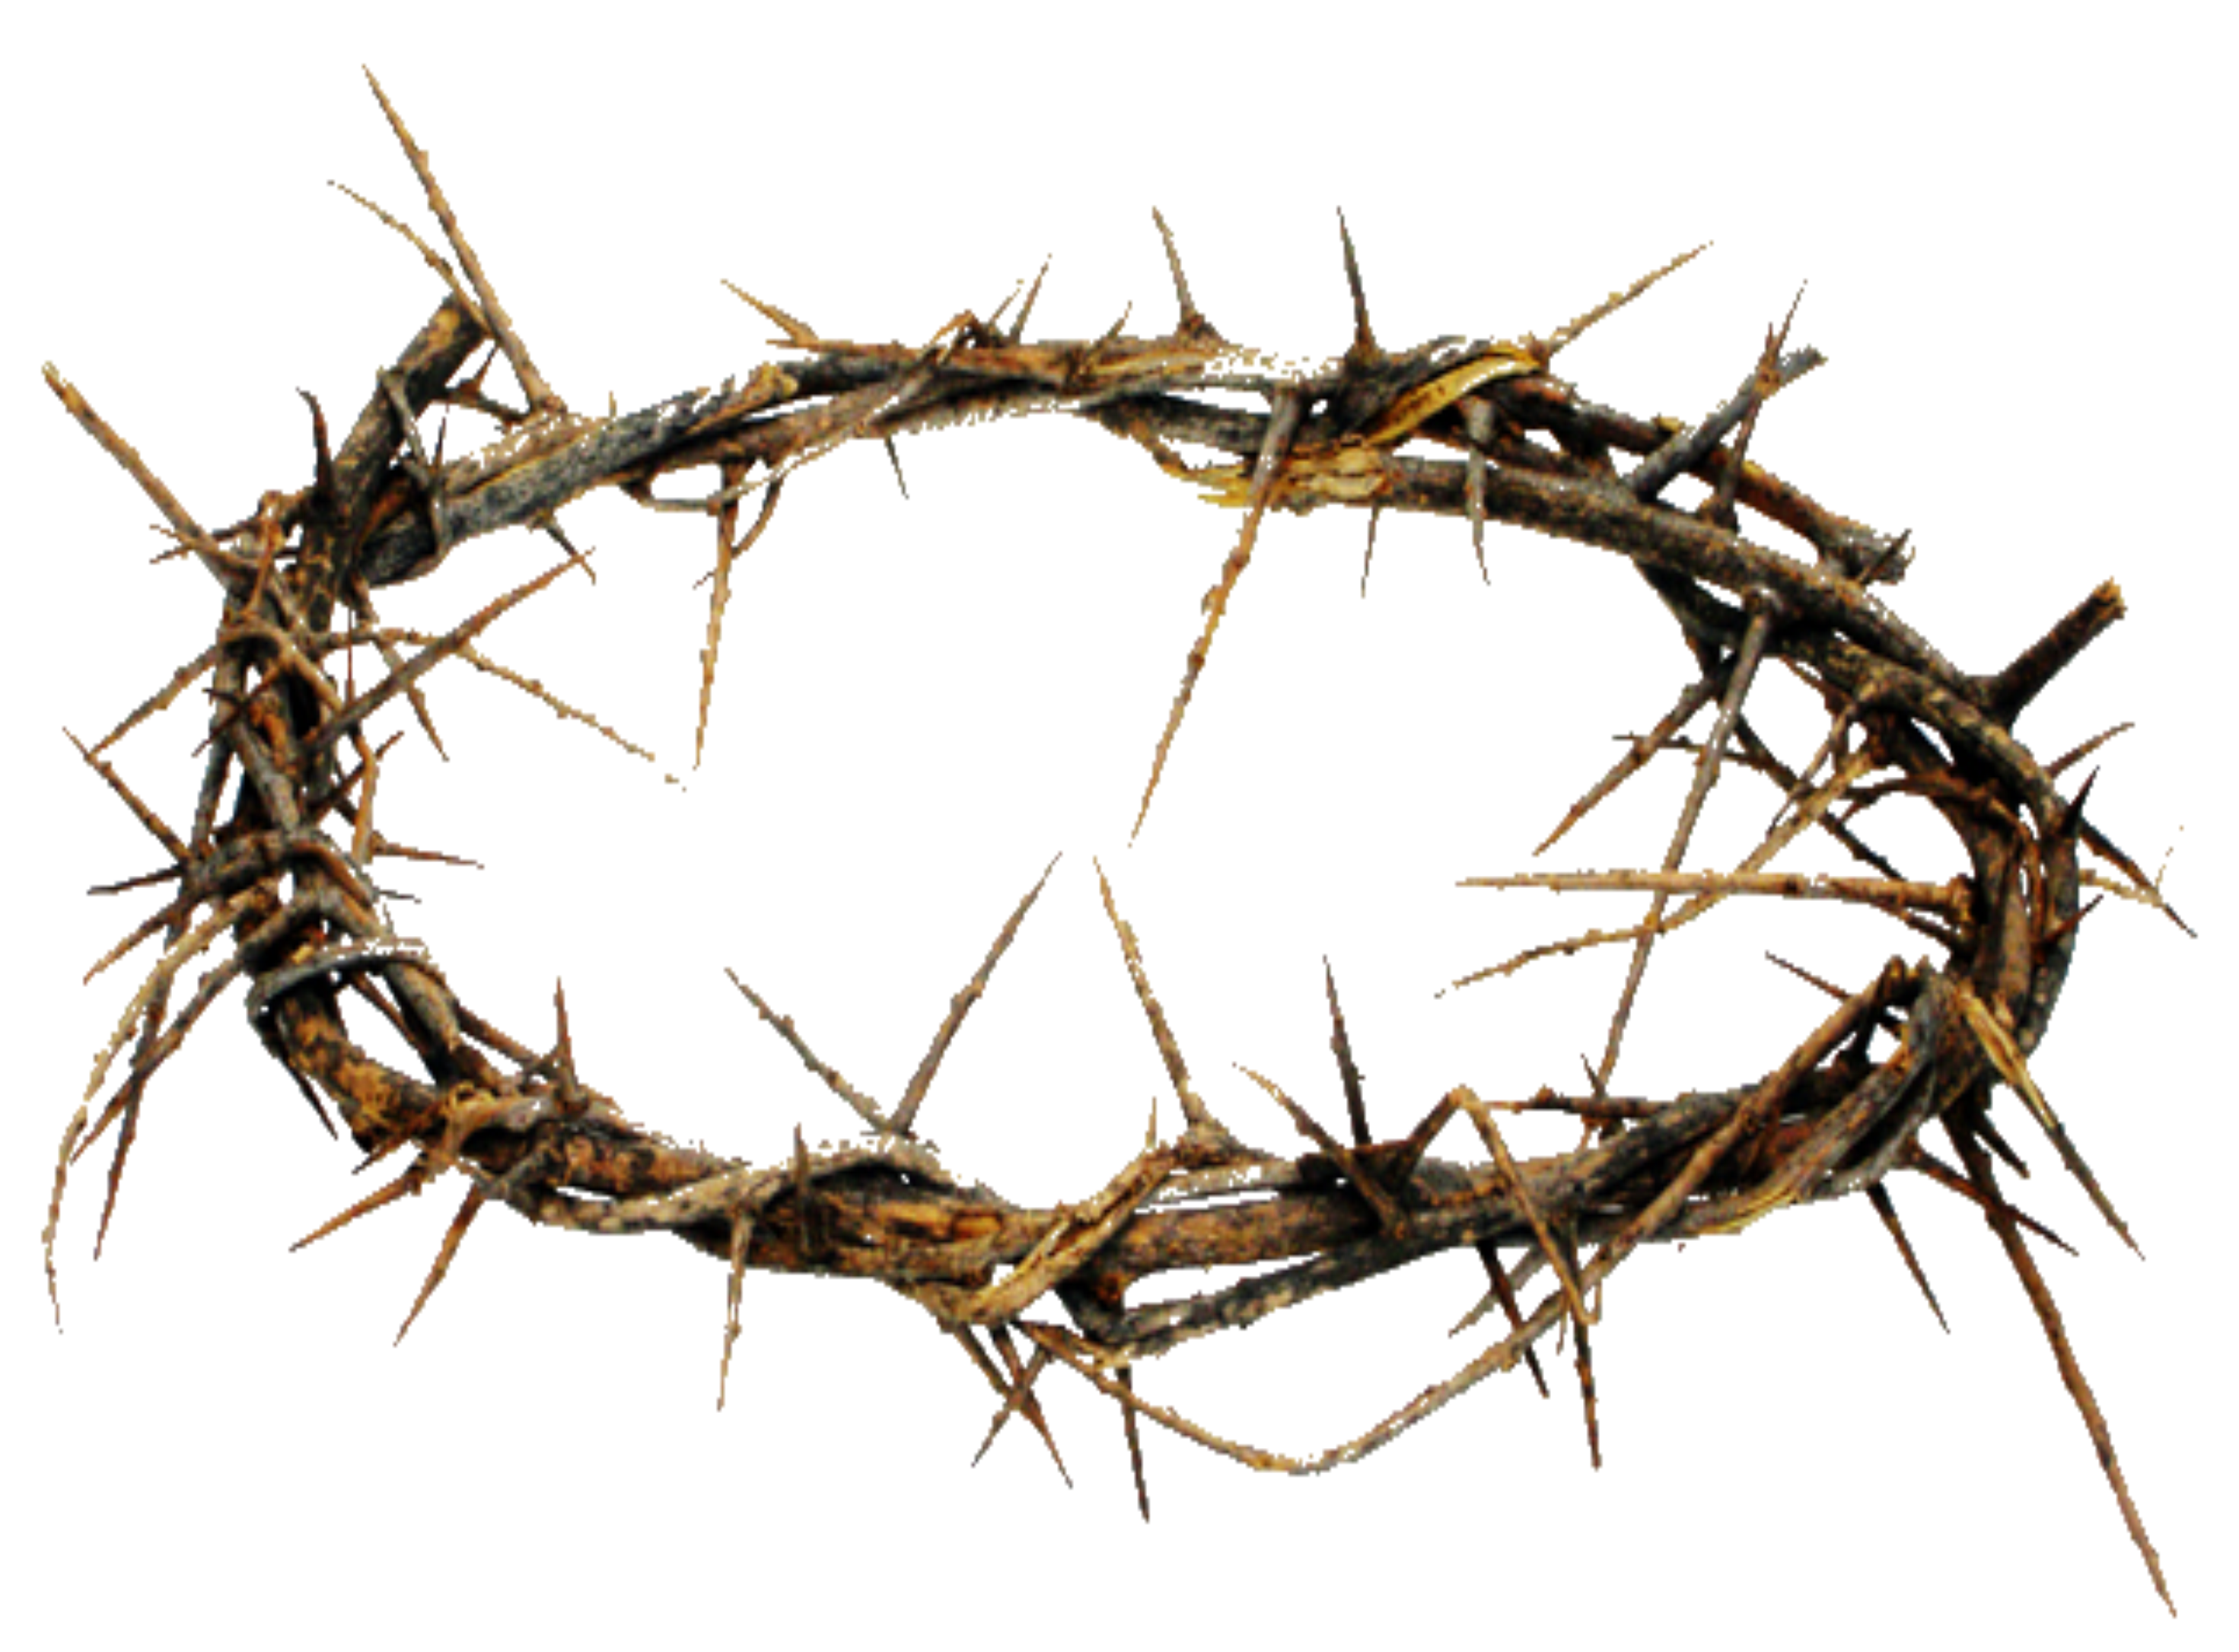 Crown of thorns transparent background png. Hd images pluspngcom thornspng